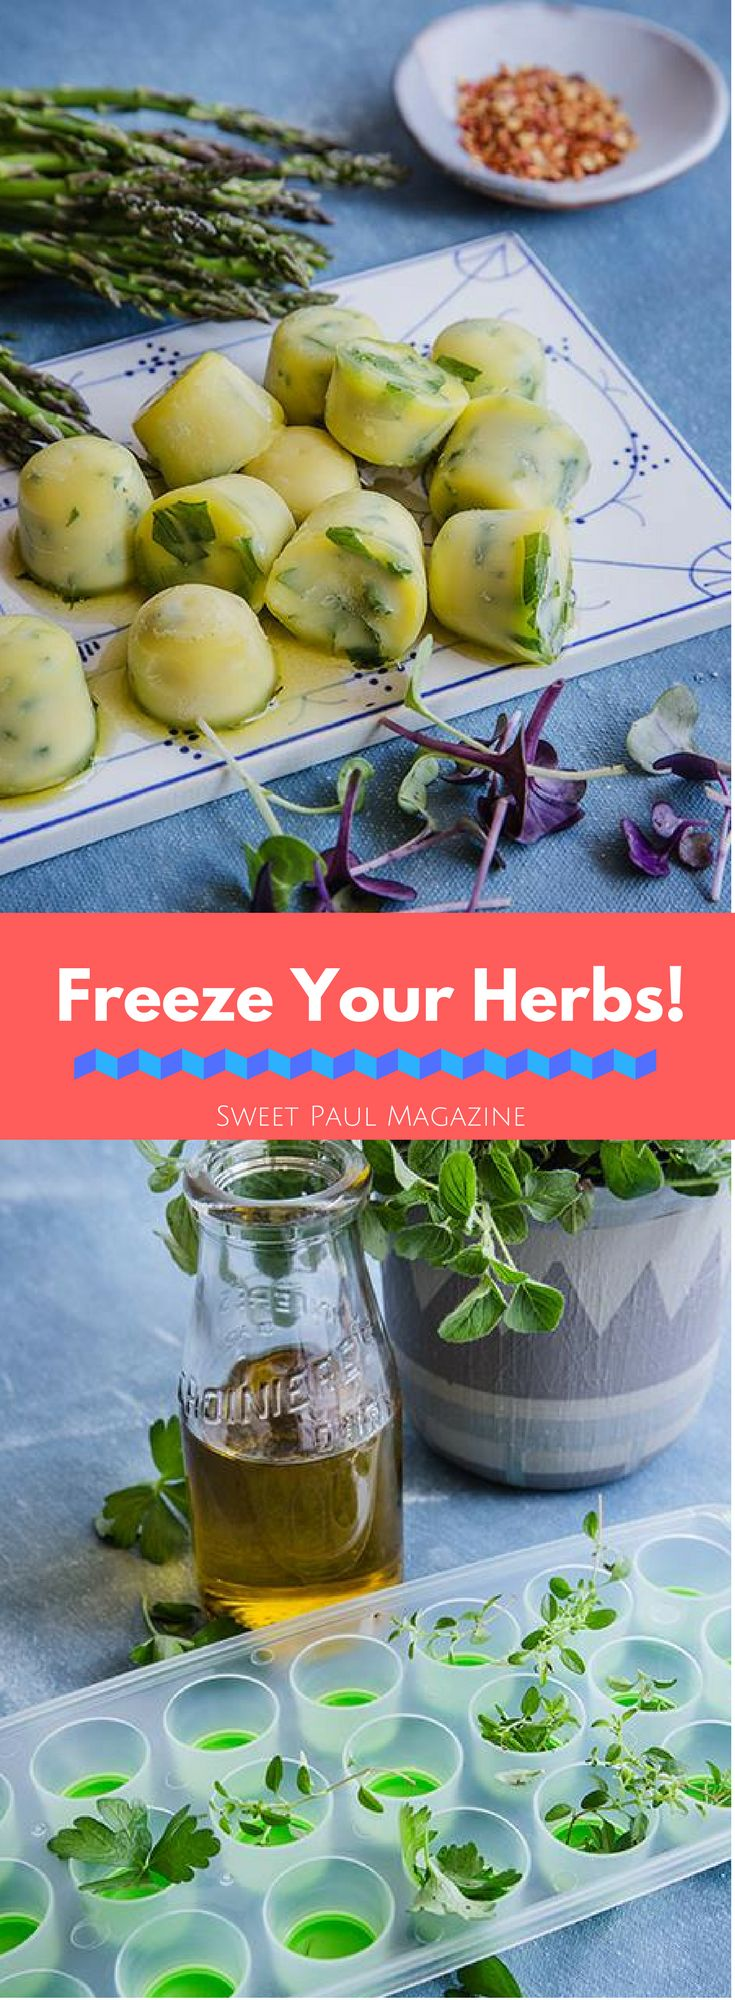 This is the easiest way to save herbs from your garden or the grocery store! I love to use this technique with herbs like rosemary, cilantro, parsley, thyme, basil, sage, and oregano. It's so easy to just pop a herb cube into a pan and cook with the fresh flavor of herbs whenever you want!